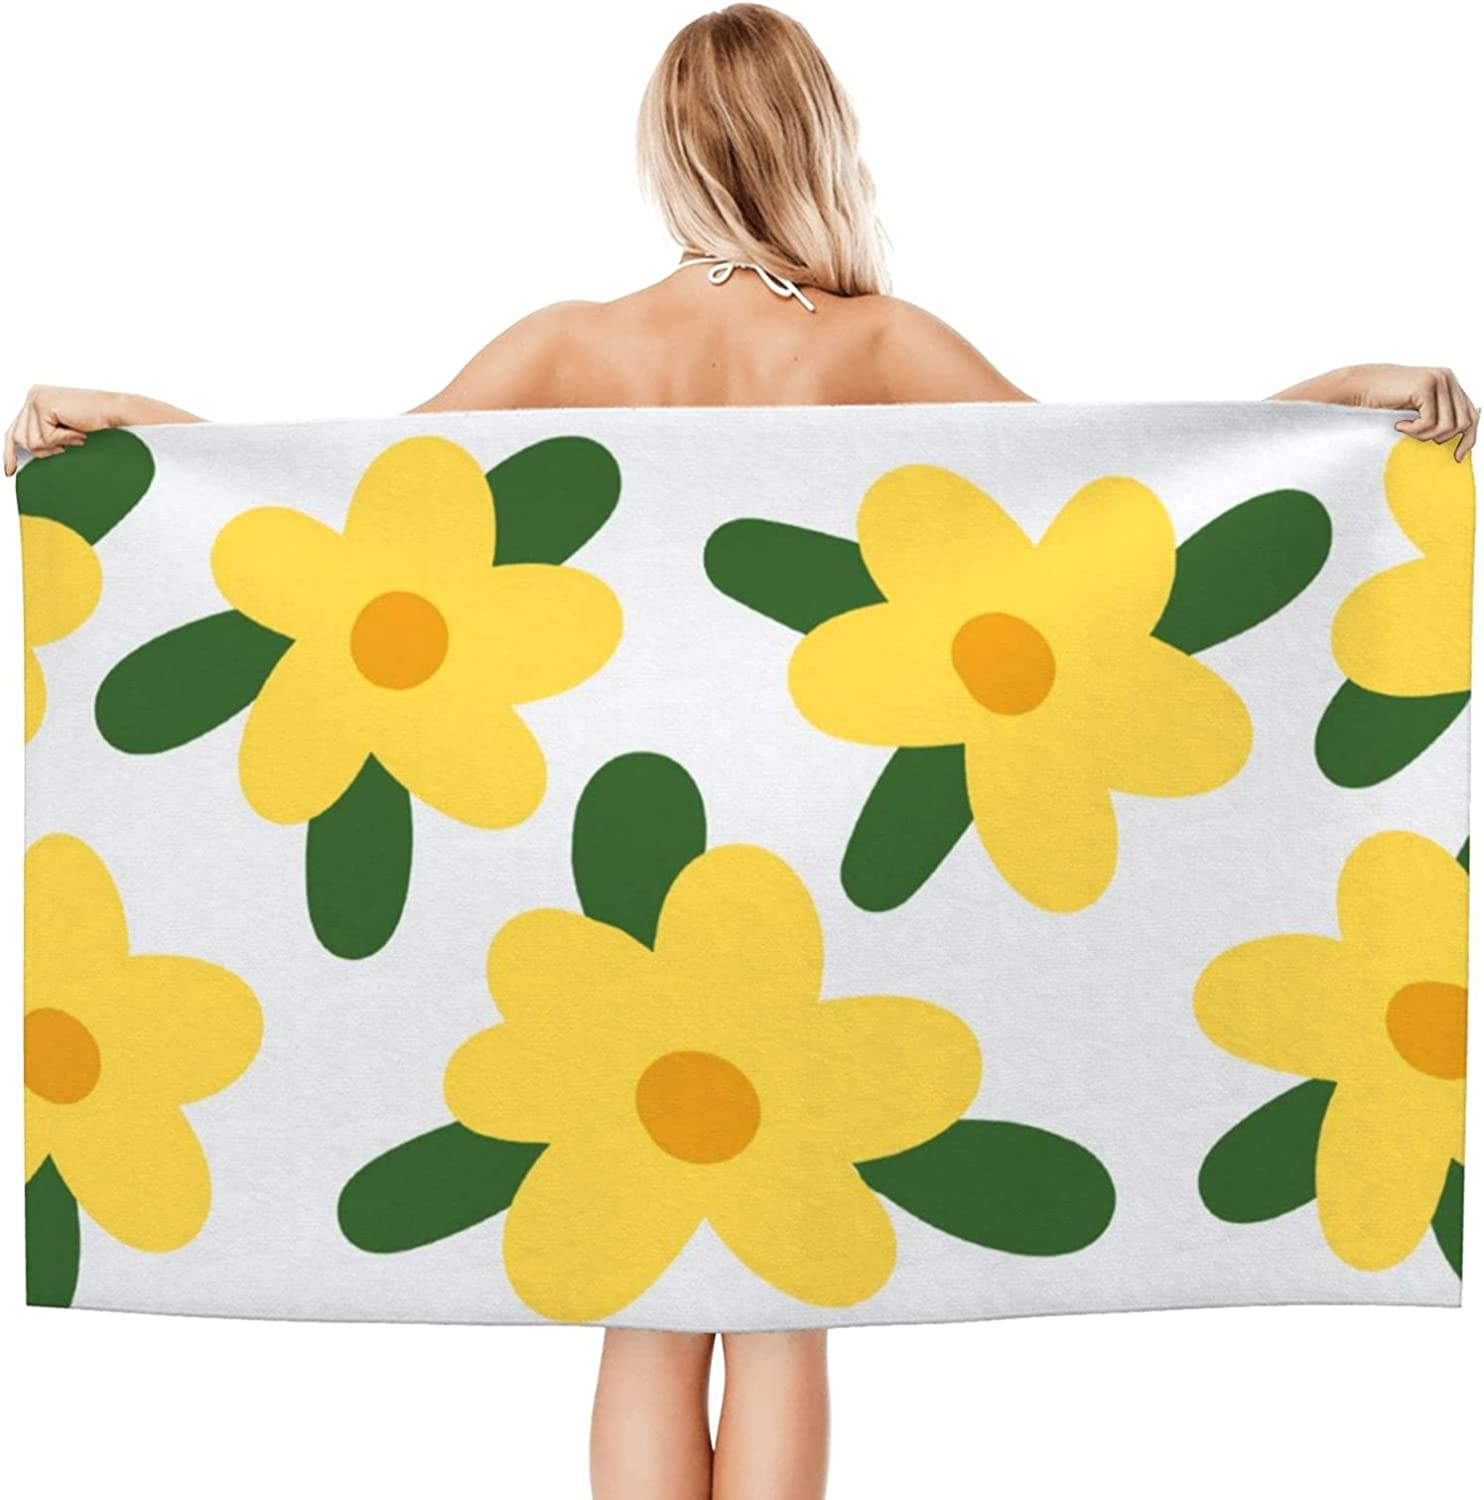 NINAINAI Super Soft Luxury Bath Max 88% OFF Excellence To Towel Absorbent Flowers